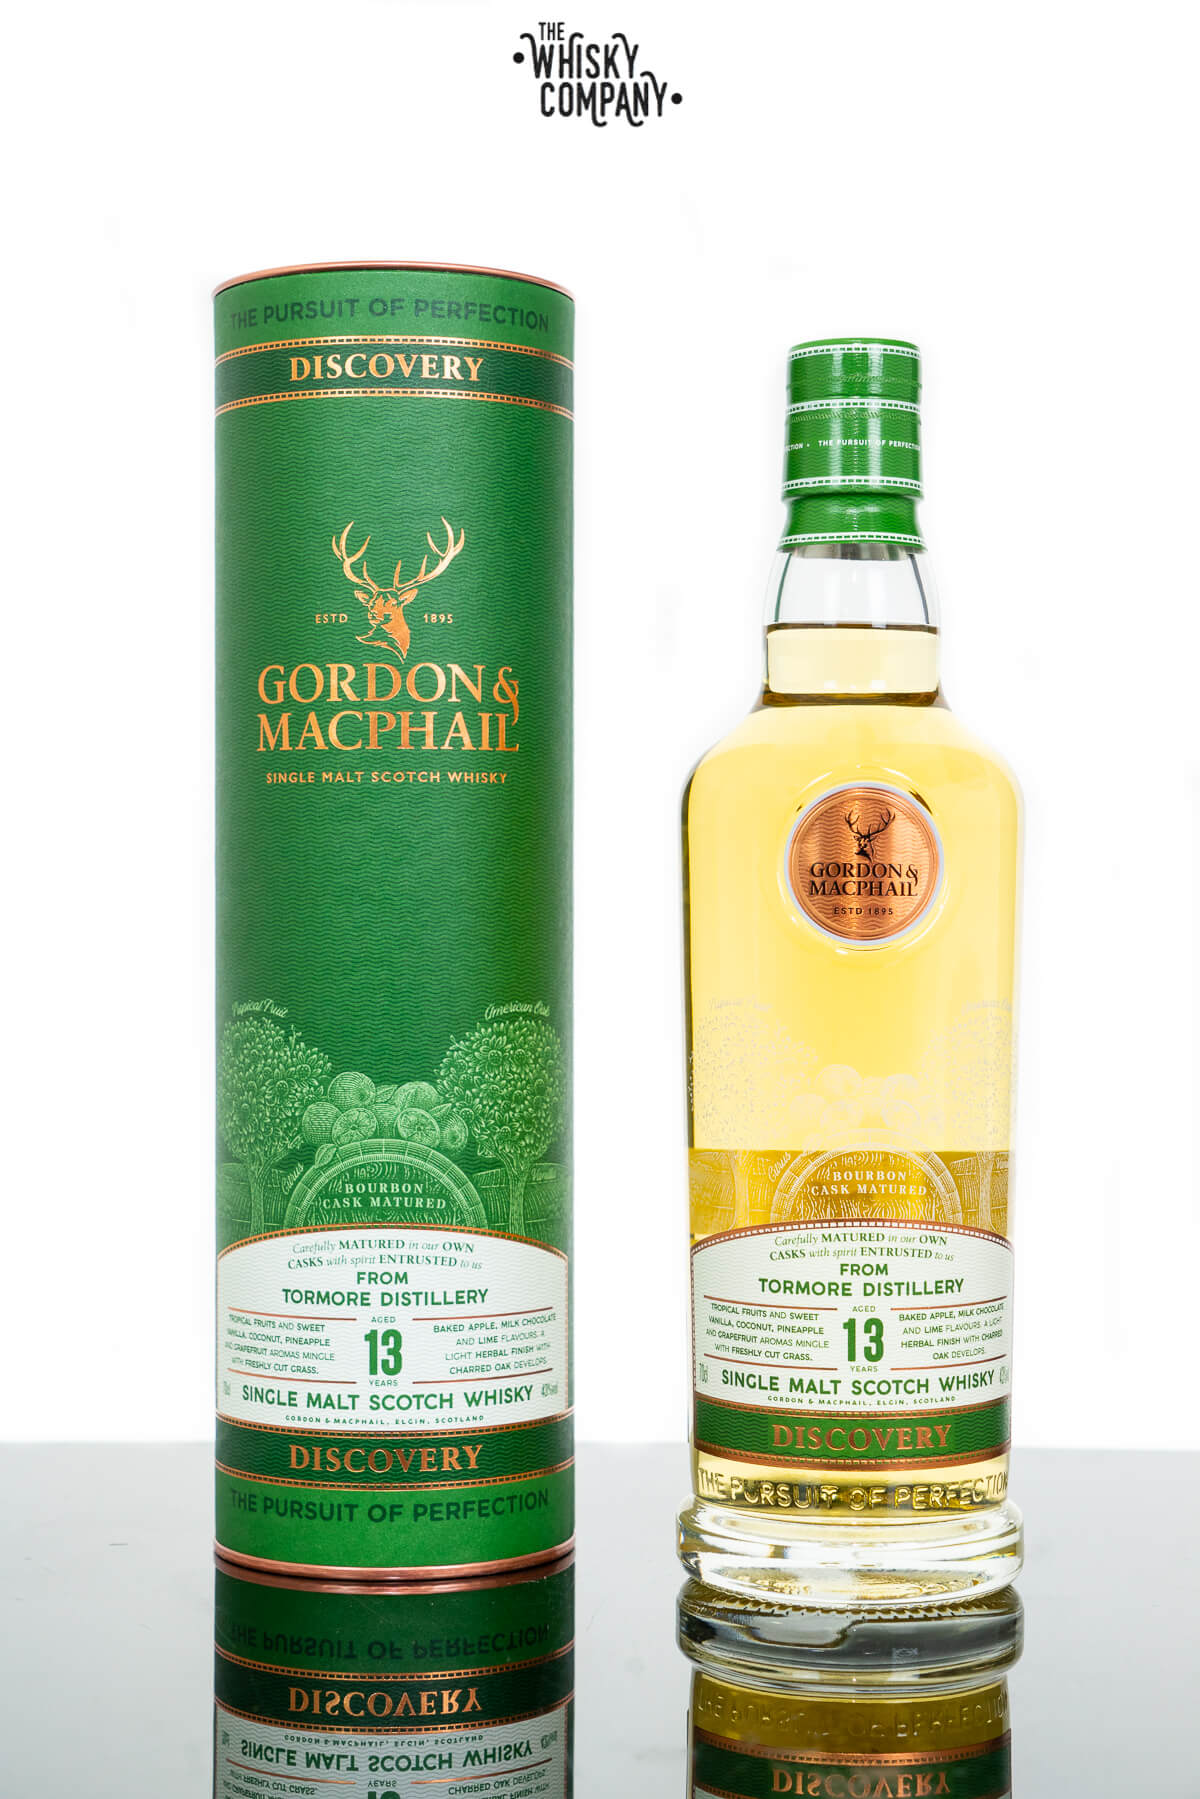 Tormore Aged 13 Years Discovery Single Malt Scotch Whisky - Gordon & MacPhail (700ml)